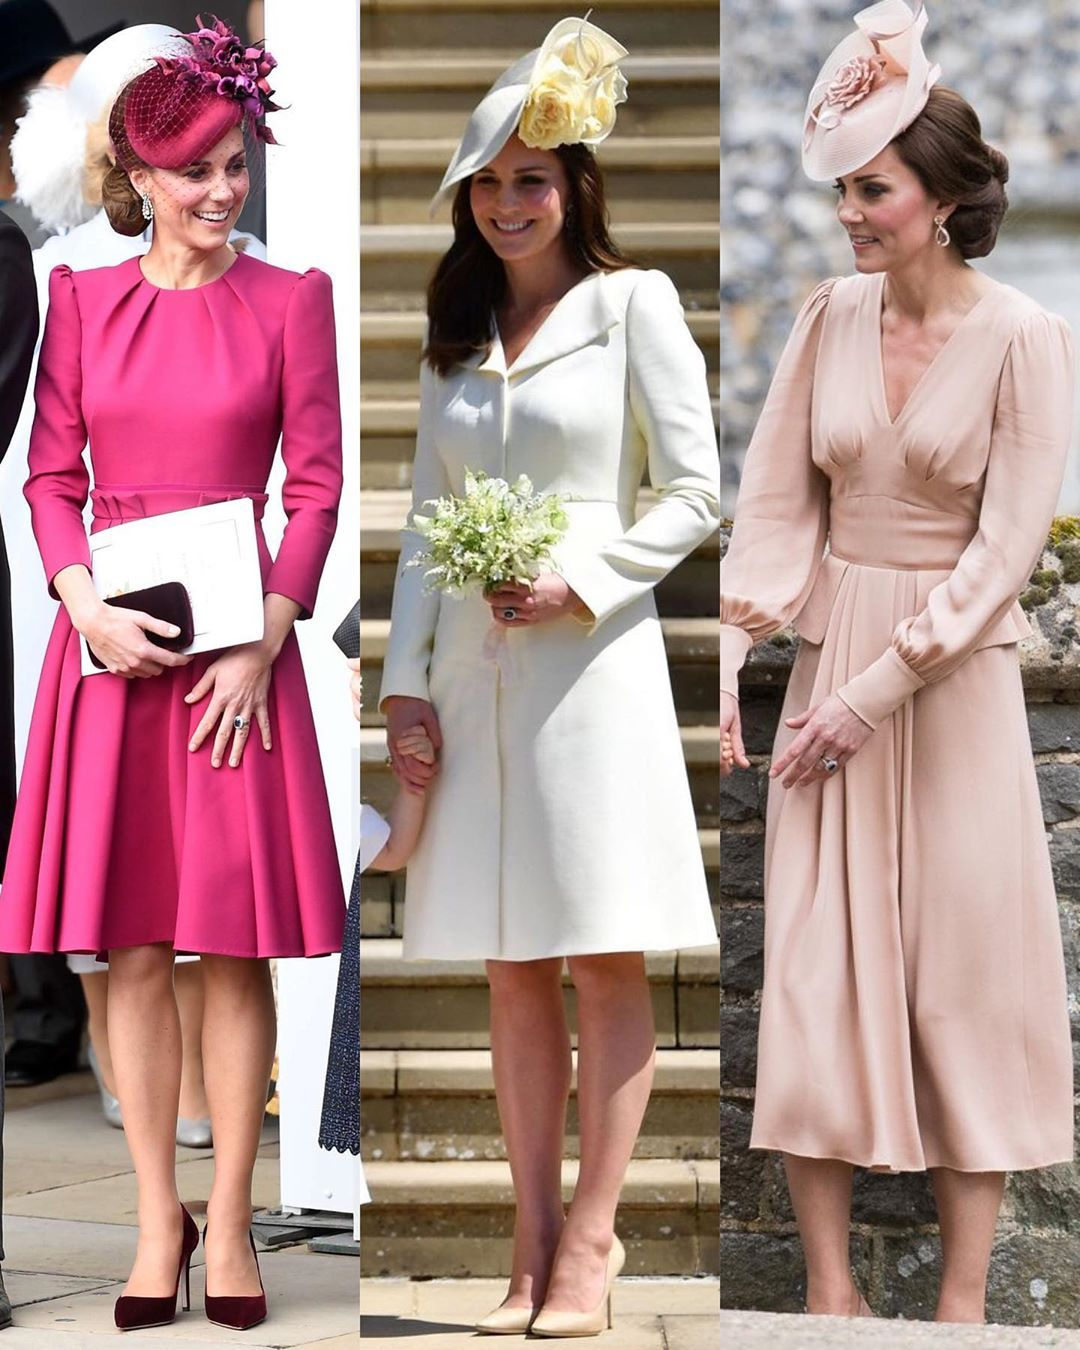 The Duchess Of Cambridge S Wedding Guest Outfits To See Her Pre Royal Wedding Appearances Visi Guest Outfit Wedding Guest Outfit Royal Wedding Guests Outfits [ 1350 x 1080 Pixel ]